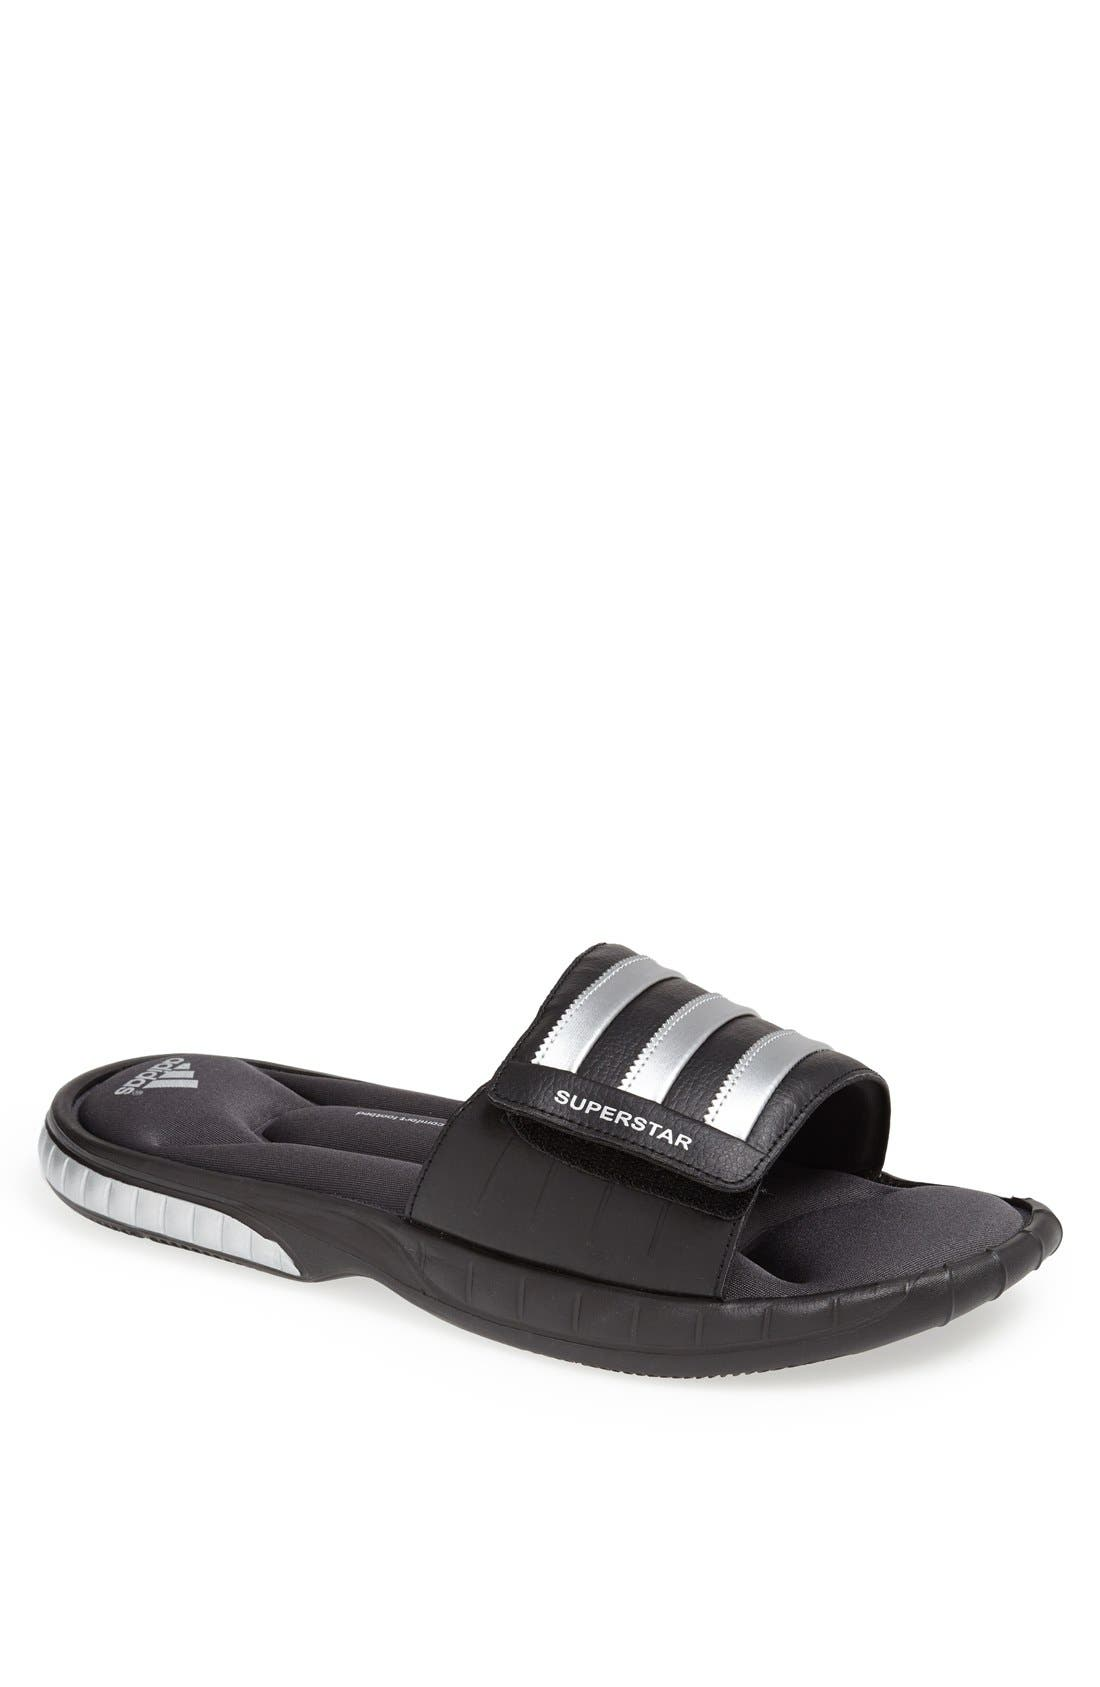 Superstar 3G Slide Sandal,                             Main thumbnail 1, color,                             001